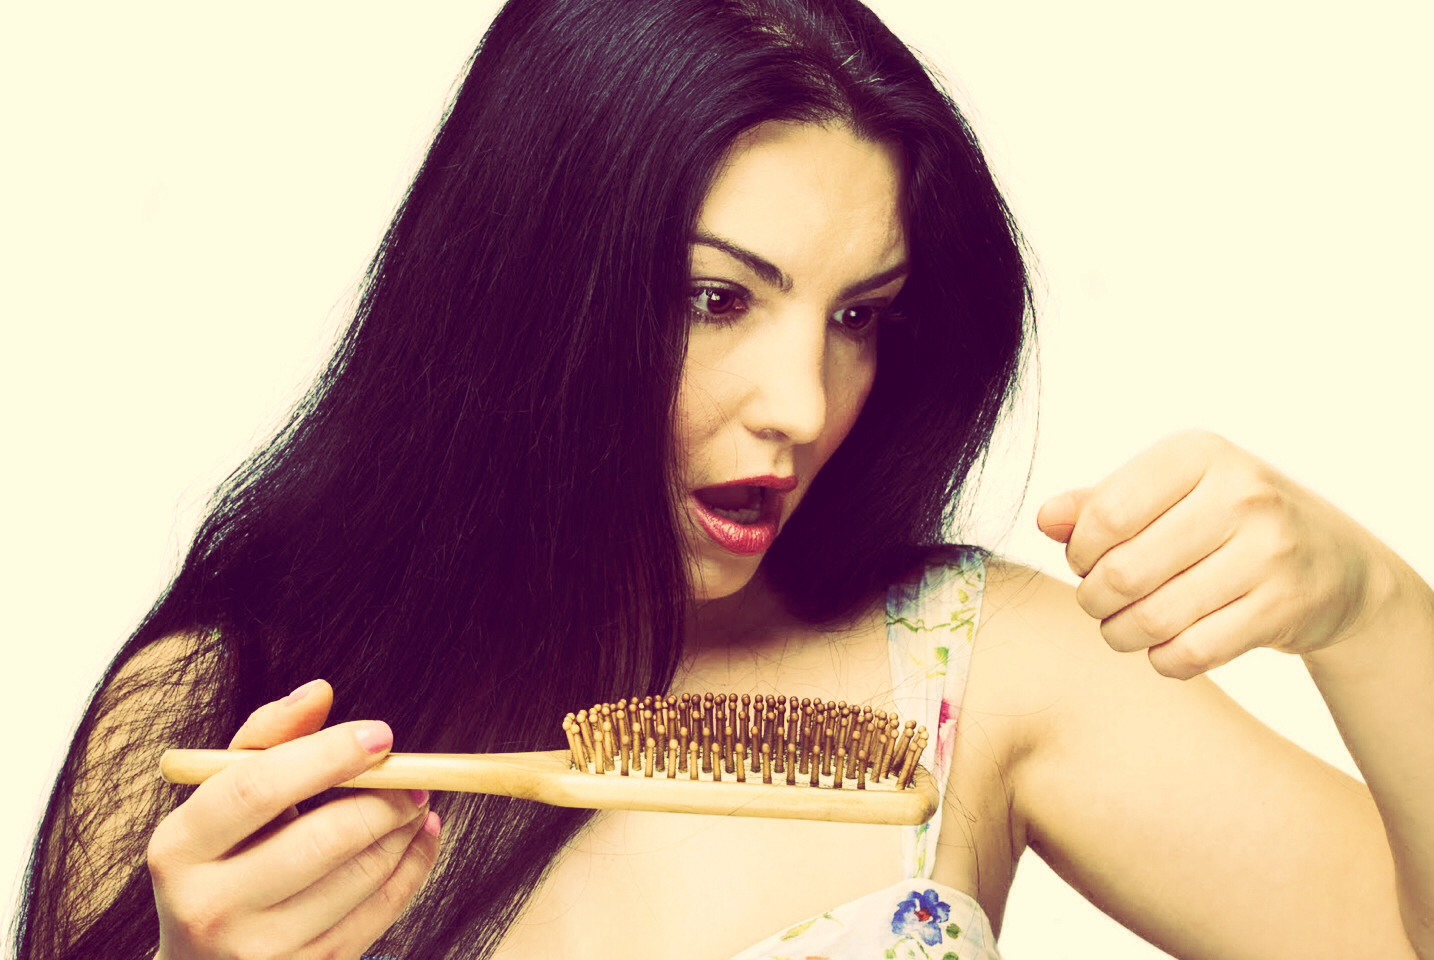 Then apply that all onto your shedding hair. Make sure it REALLY saturates the roots!!!